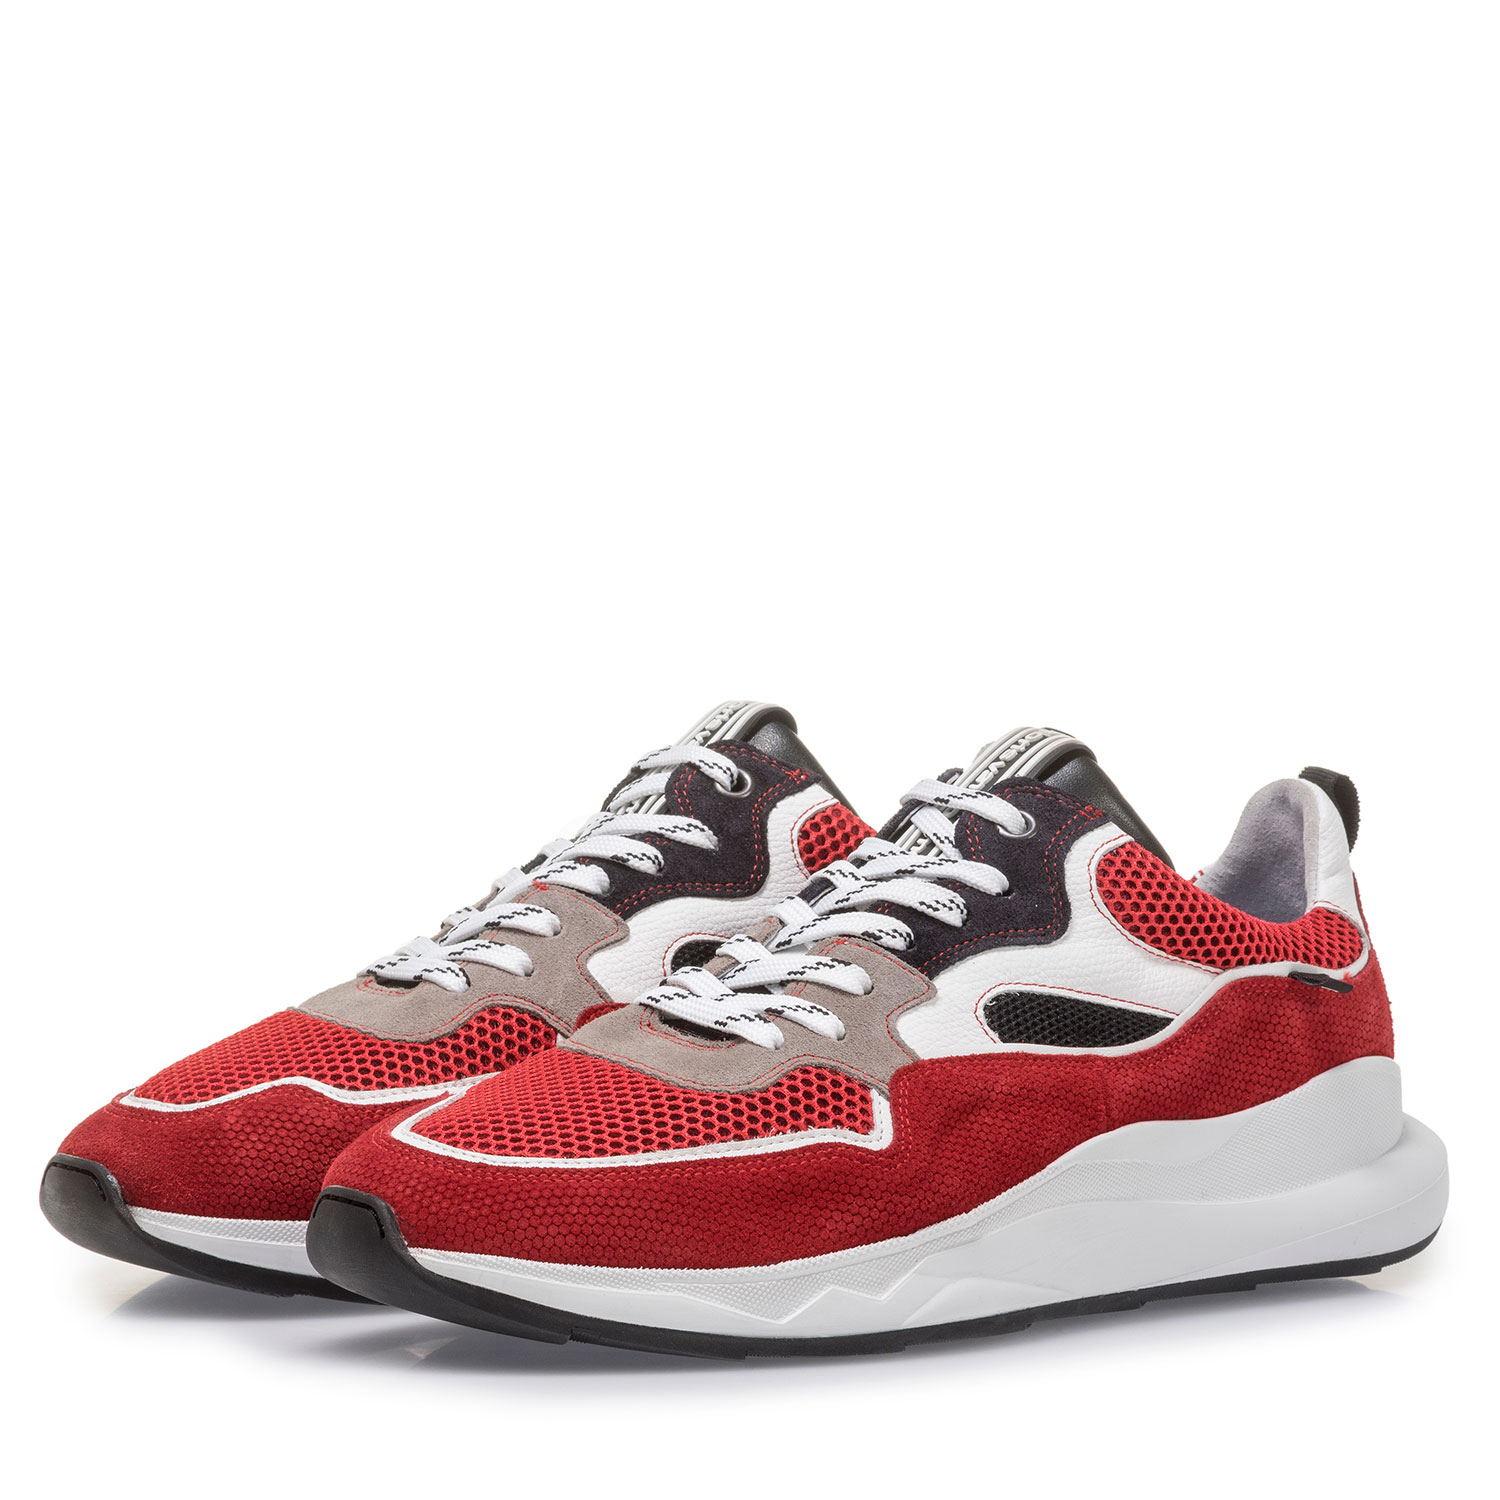 16269/20 - Multi-colour red and white suede leather